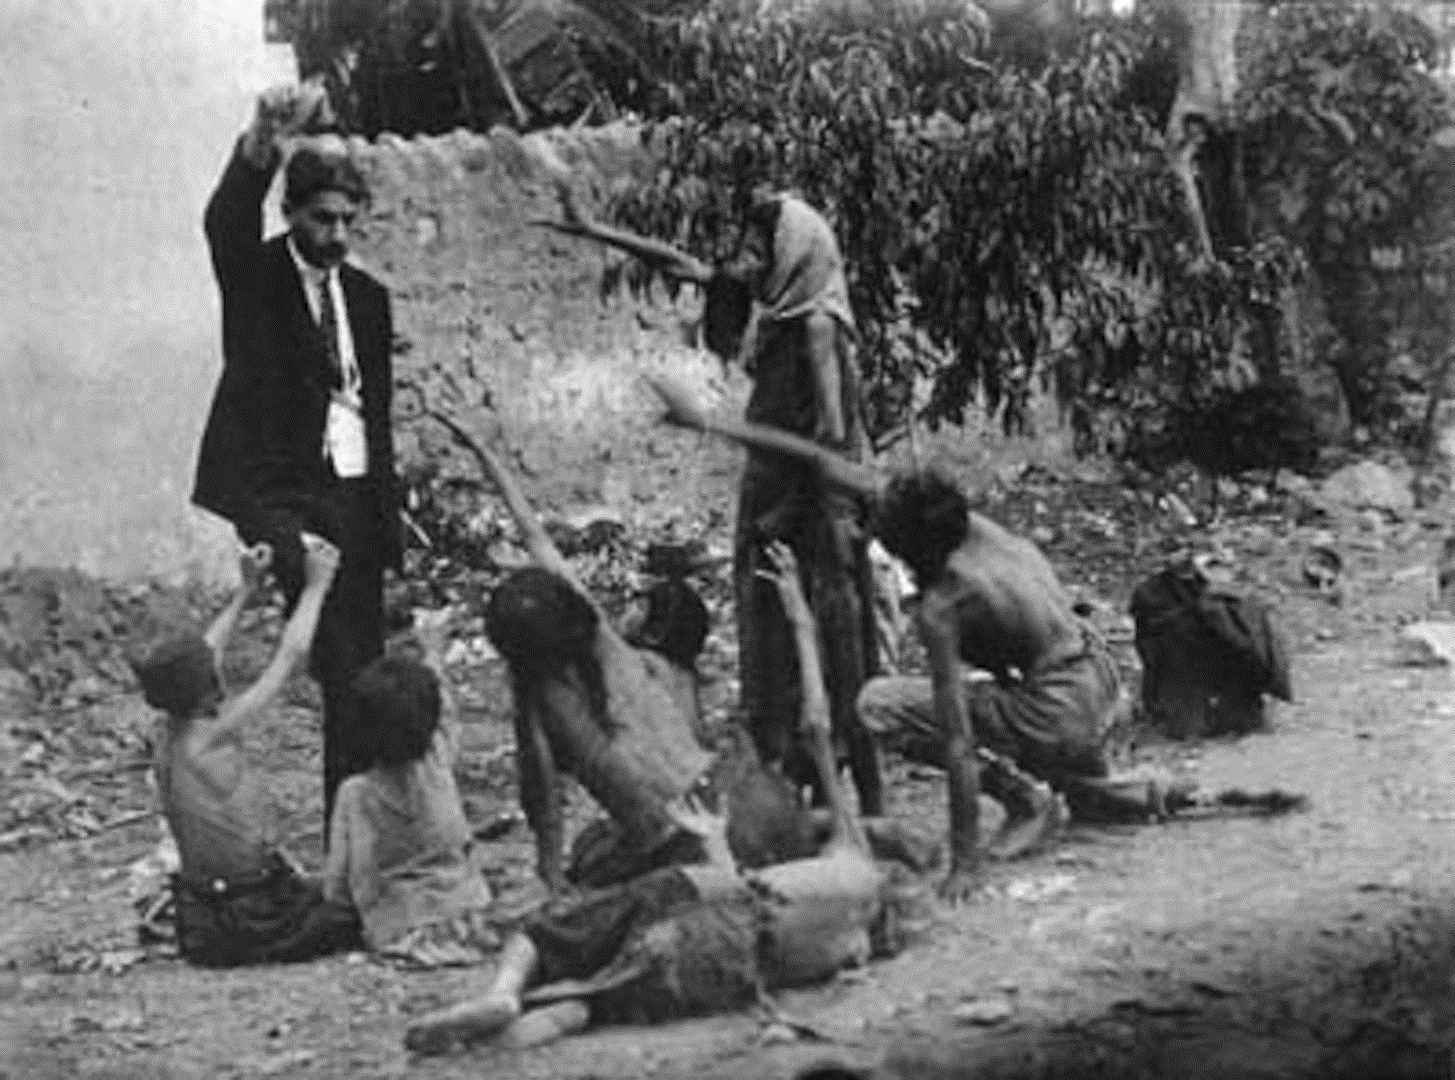 http://2.bp.blogspot.com/-wVskay0avmM/UY15Vf9Jh1I/AAAAAAAAEvc/7NqFf6f2Ziw/s1600/Turk_official_teasing_Armenian_starved_children_by_showing_bread,_1915_(Collection_of_St._Lazar_Mkhitarian_Congregation).jpg